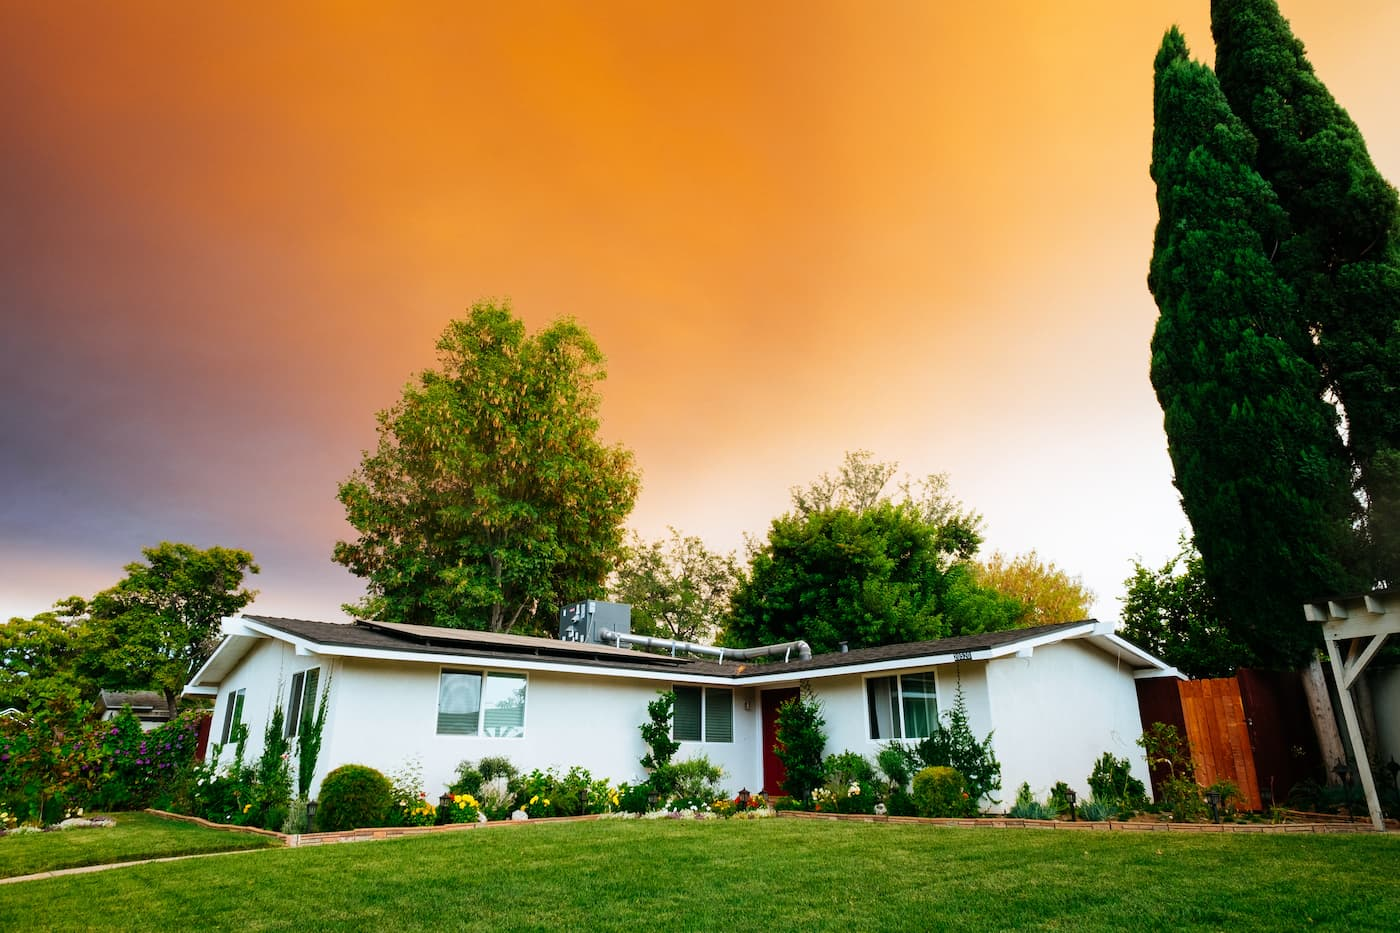 How To Value A Real Estate Rental Property